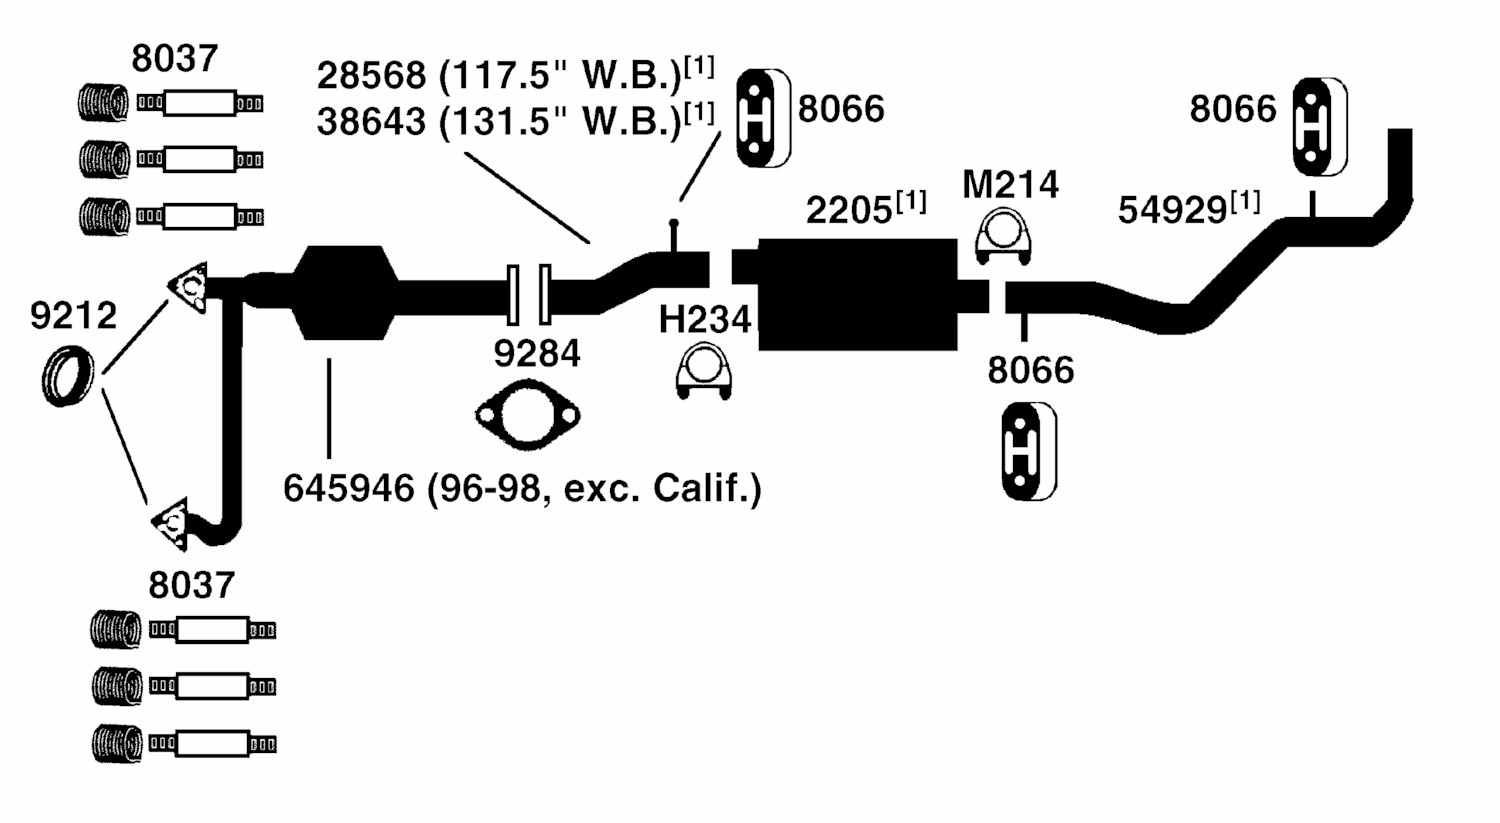 2002 chevy cavalier exhaust system diagram 2009 pontiac g6 stereo wiring ignition get free image